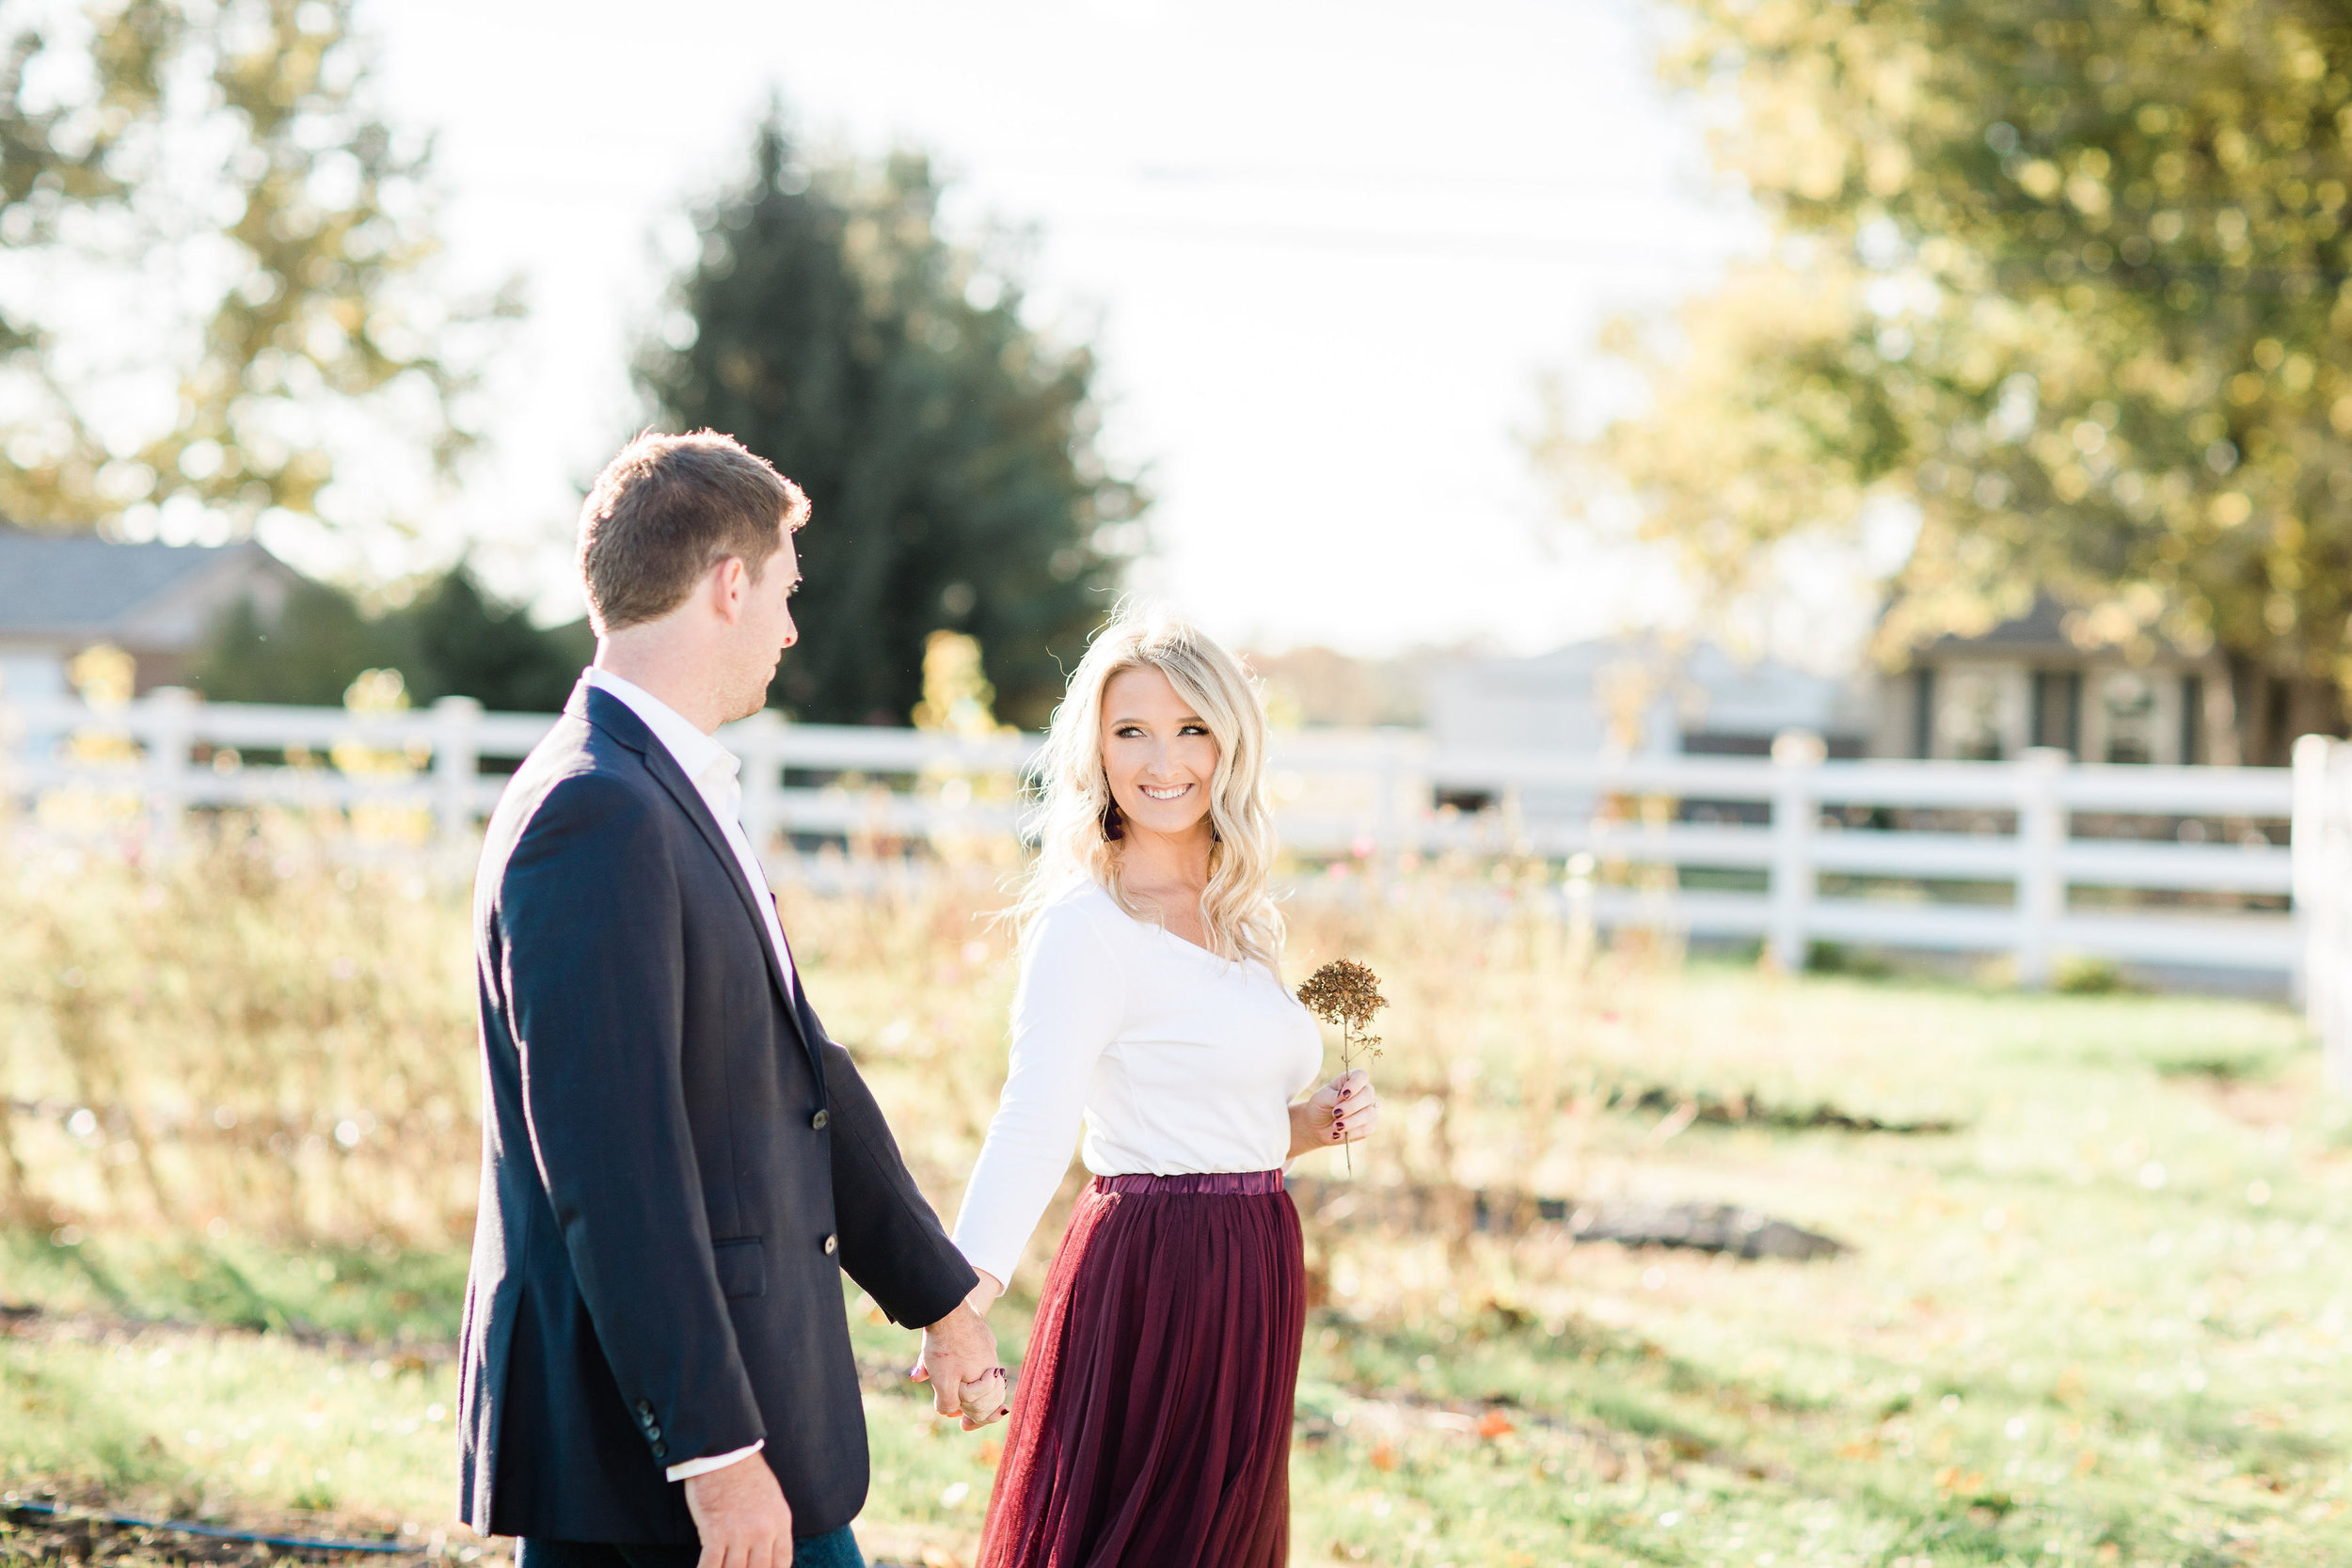 cincinnati engagement pictures the marmalade lily photographers-14.jpg